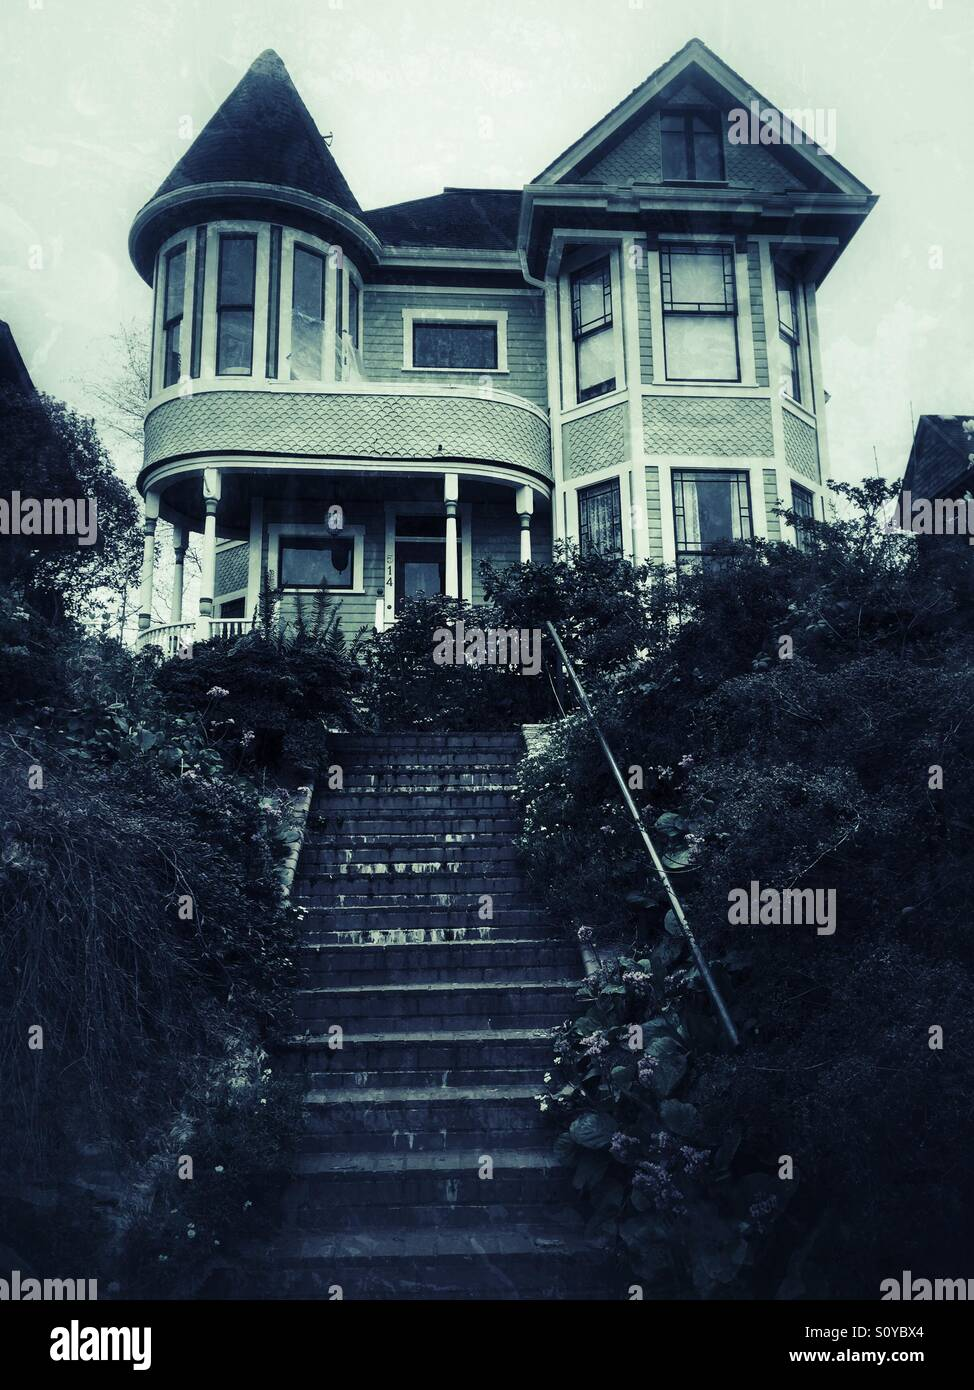 an old creepy victorian house on the hill stock photo royalty